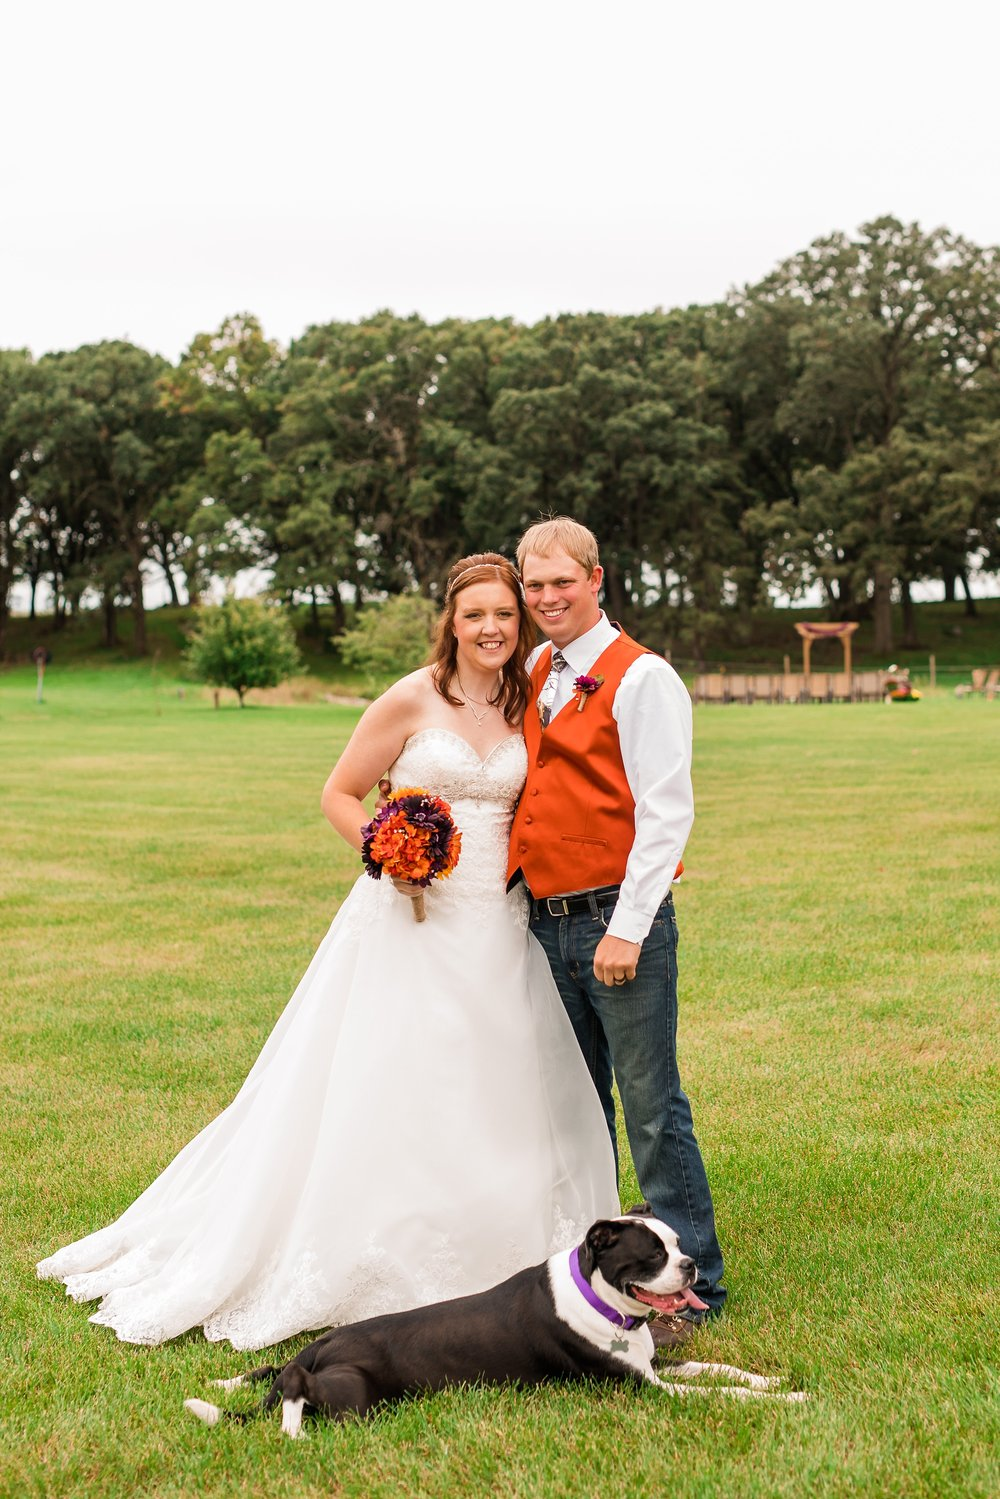 Amber Langerud_Lake Park MN Barn wedding at the Hitching Post_0430.jpg